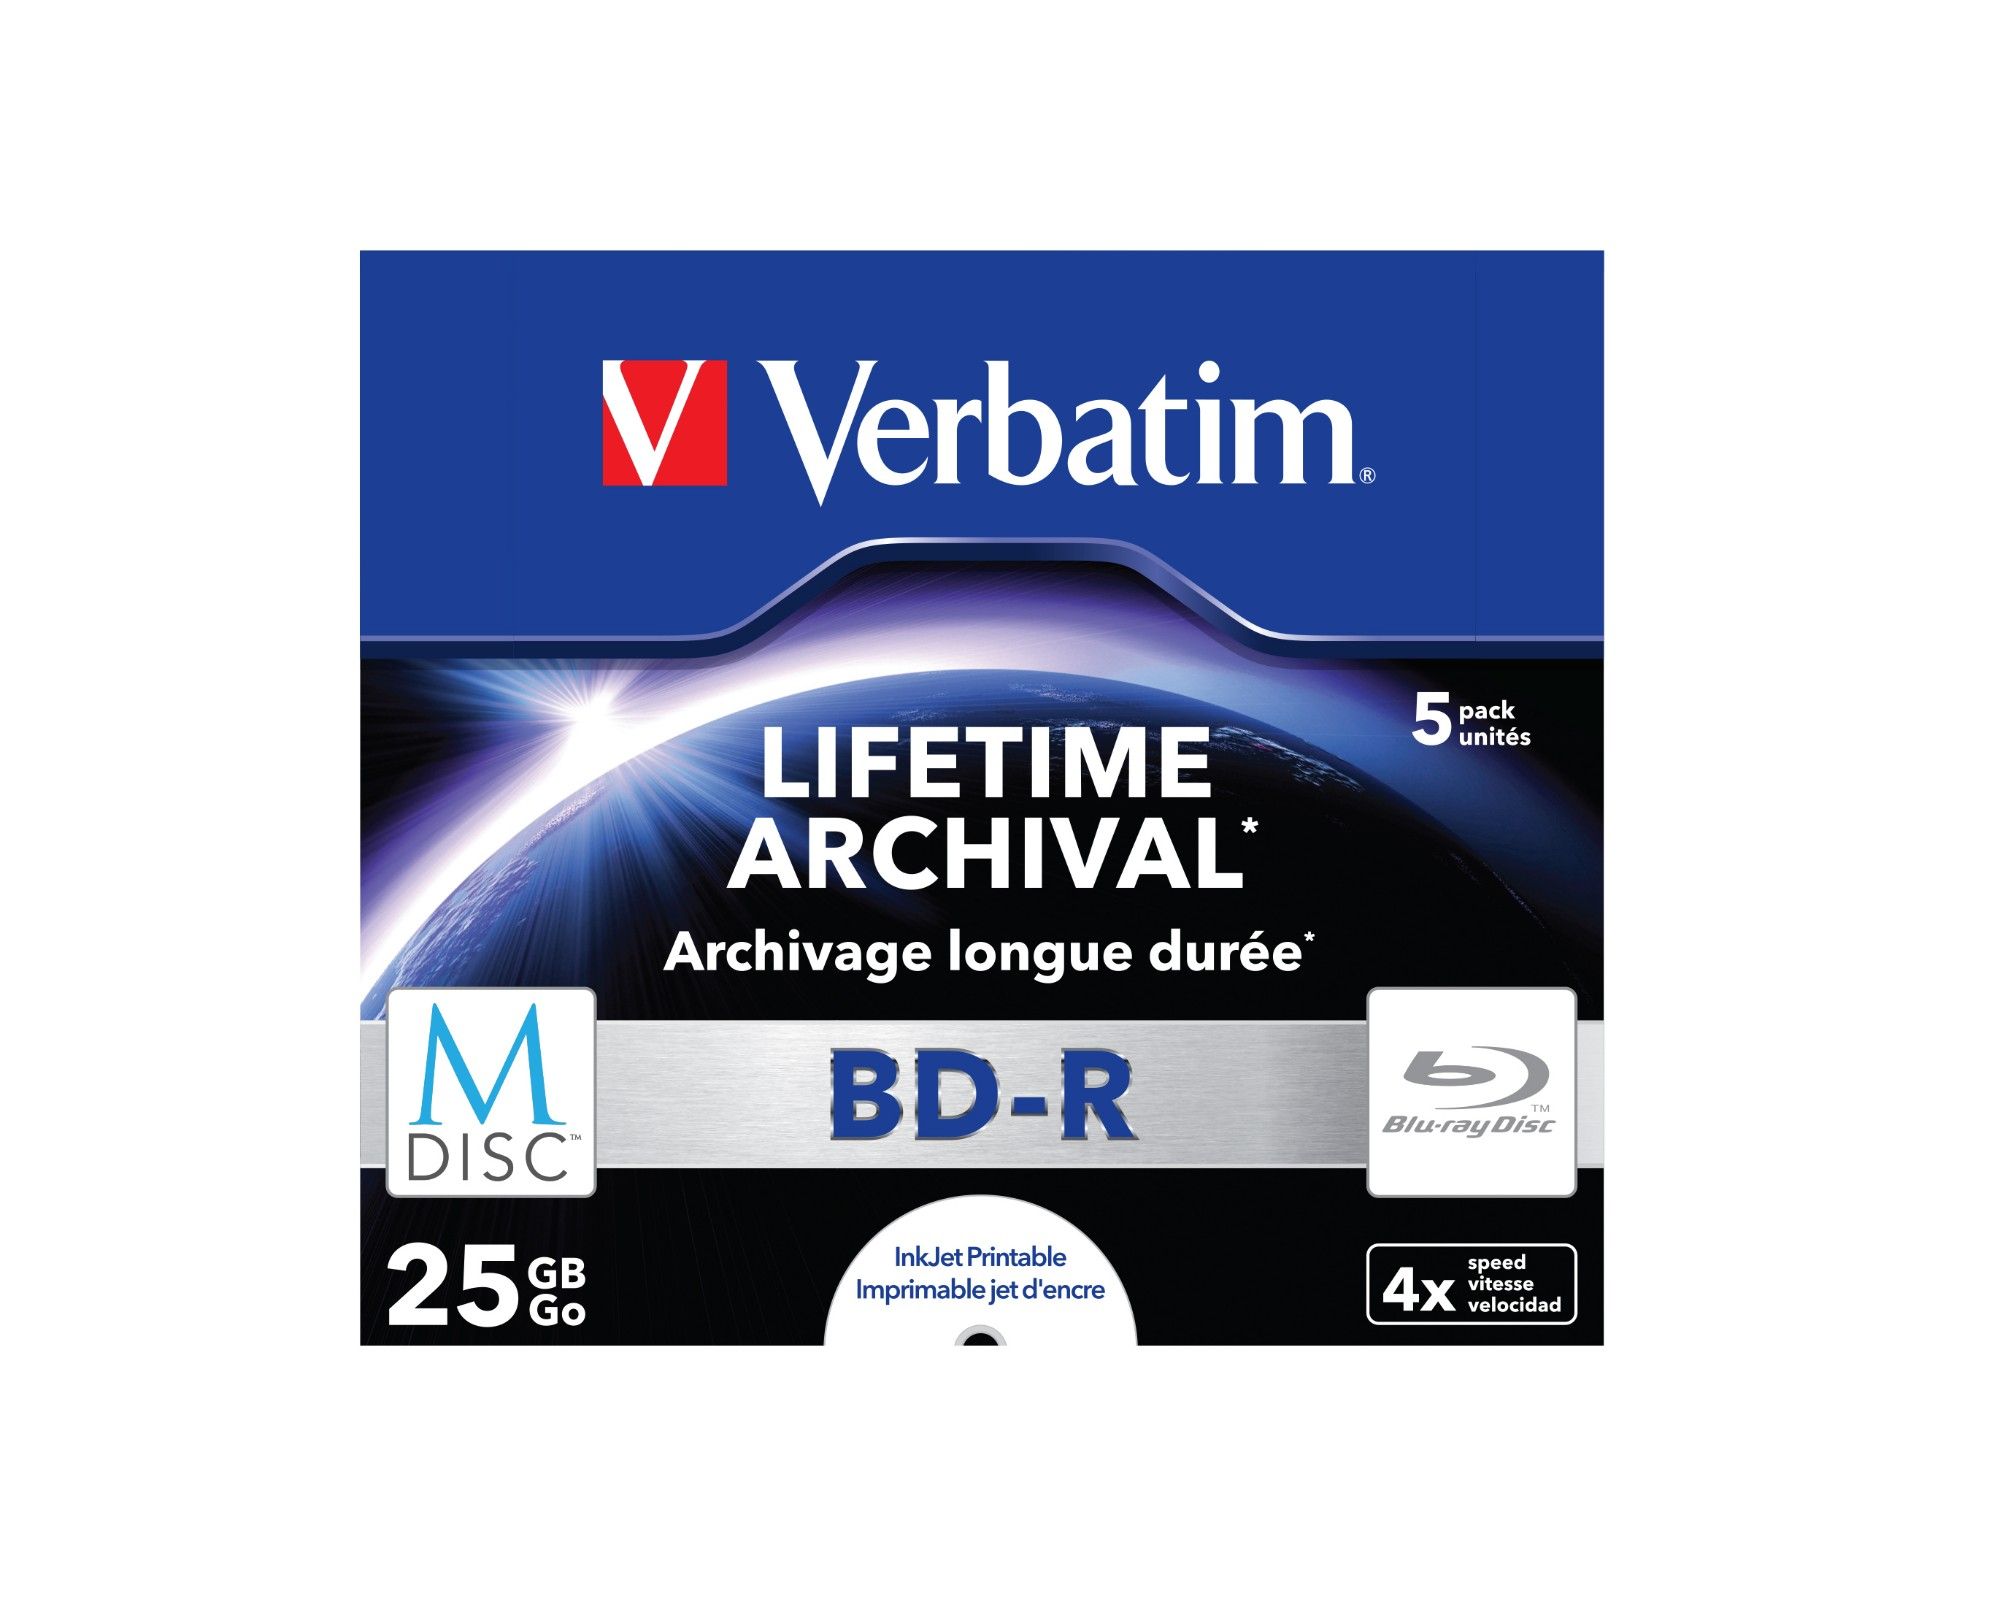 Verbatim M-Disc 4x BD-R 25GB 5pc(s)